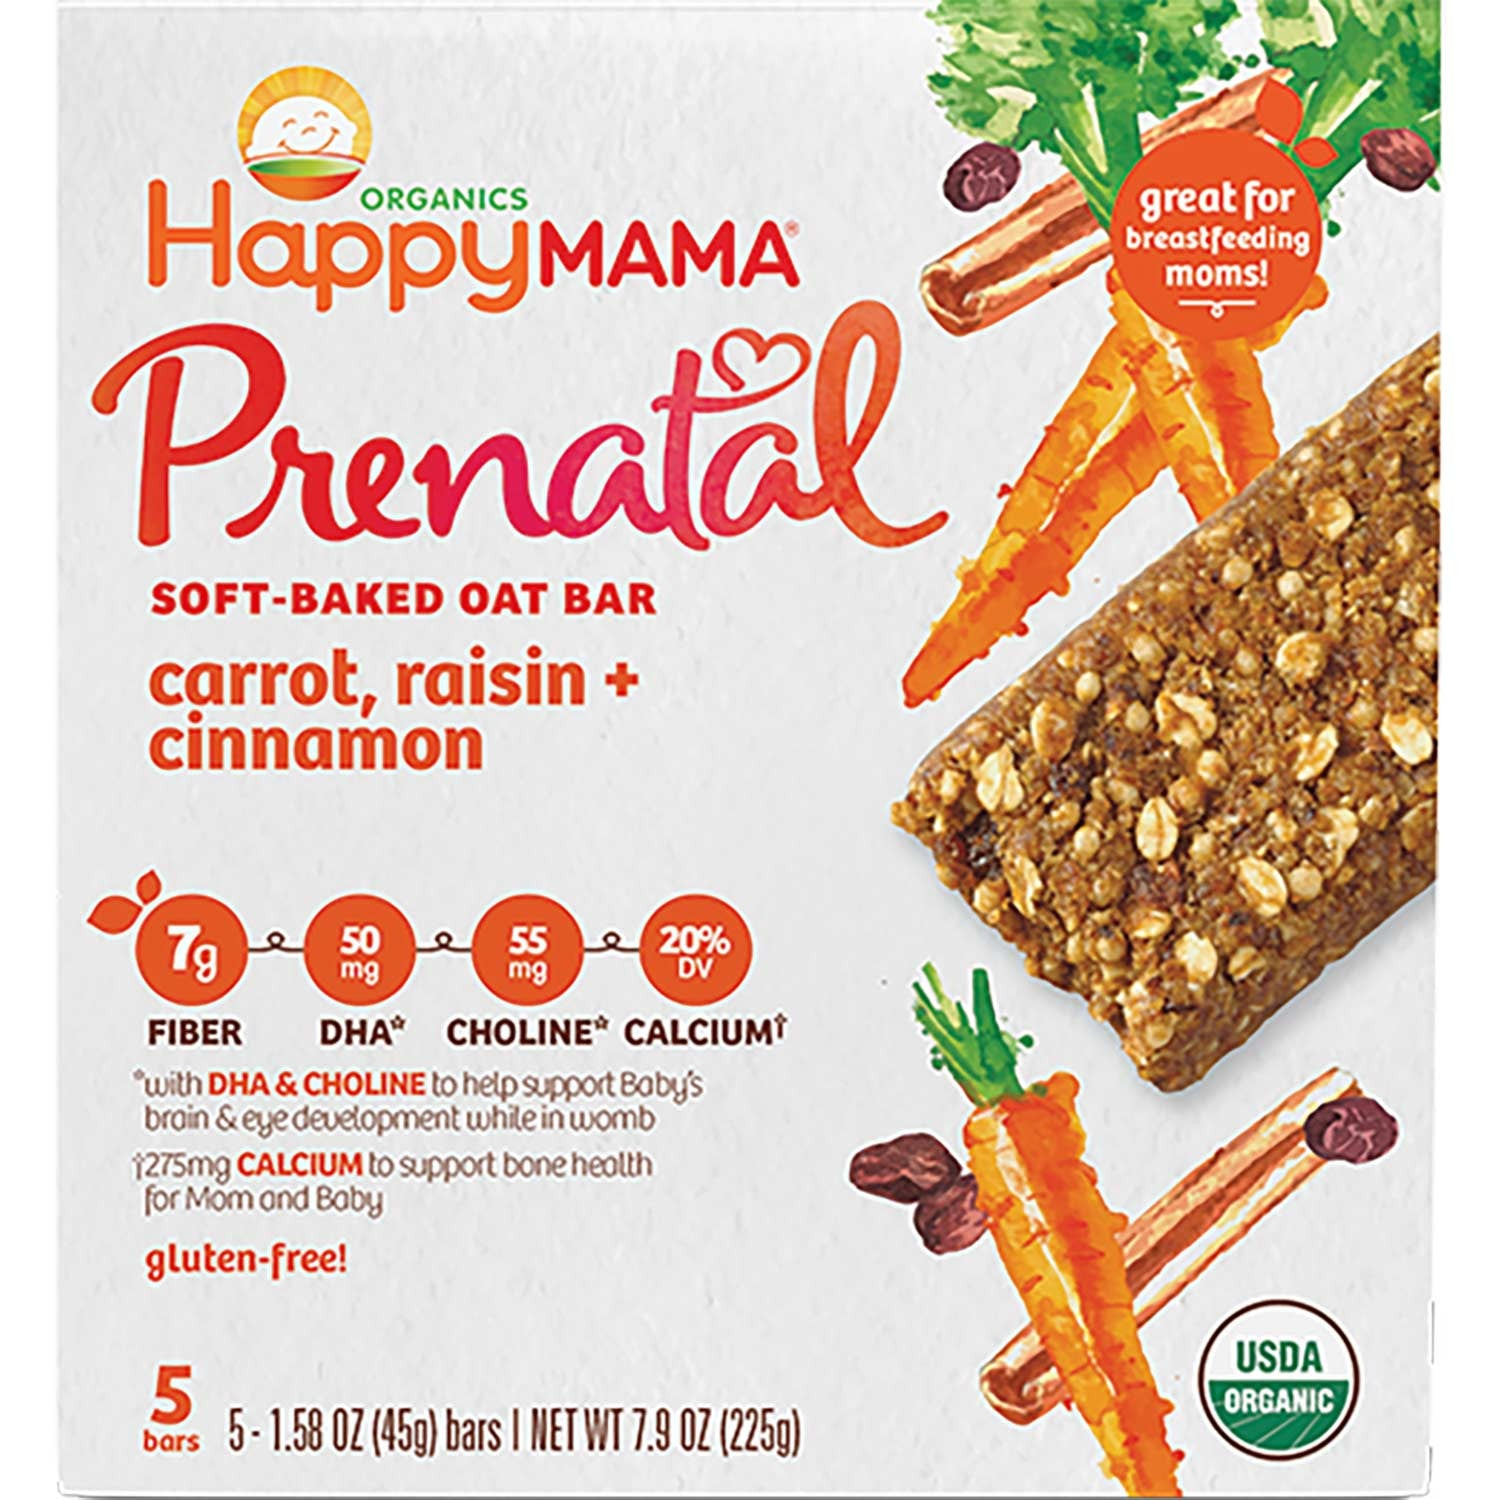 Happy Family Happy Mama Prenatal Soft-Baked Oat Bar - Carrot, Raisin & Cinnamon, 5 x 45 g.